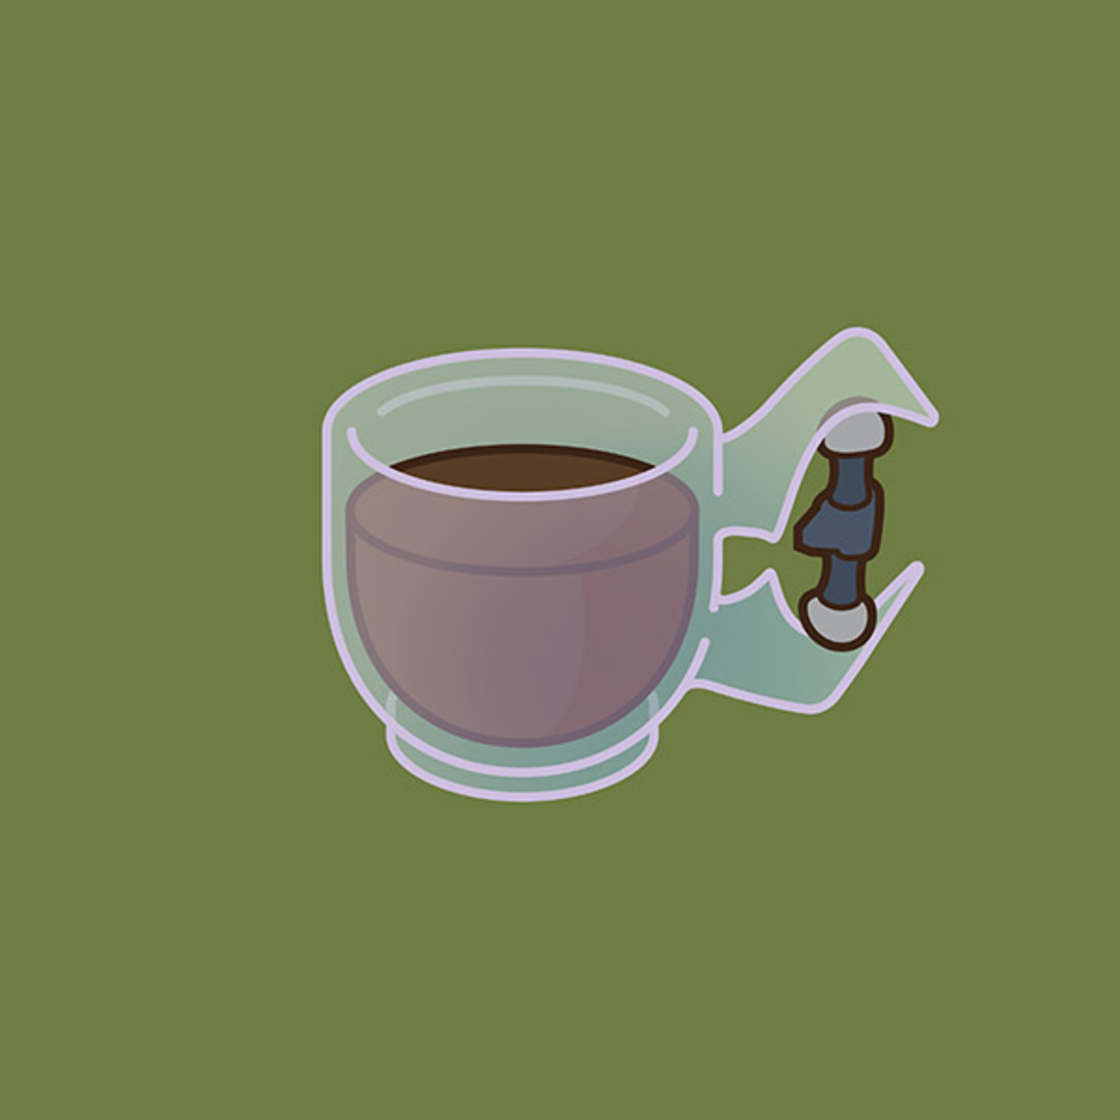 Pop Culture Coffee - Cult characters of pop culture turned into coffee cups